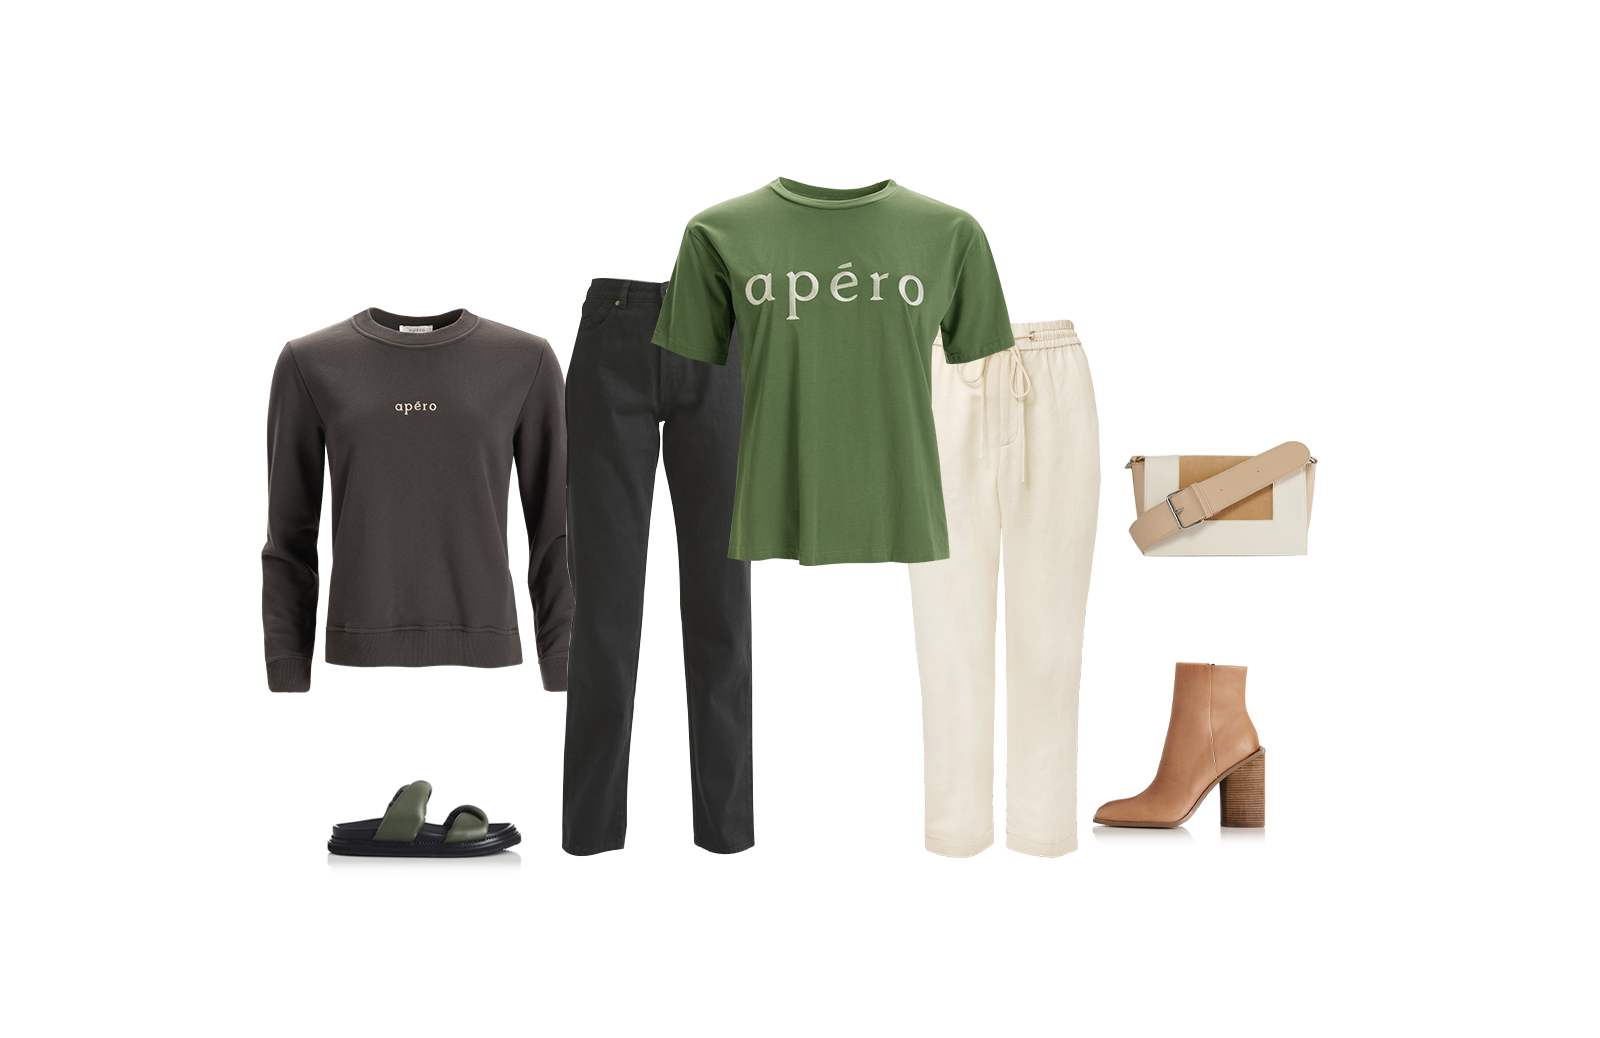 Apéro Embroidered Tee - Forest Green and Mini Embroidered Jumper - Charcoal